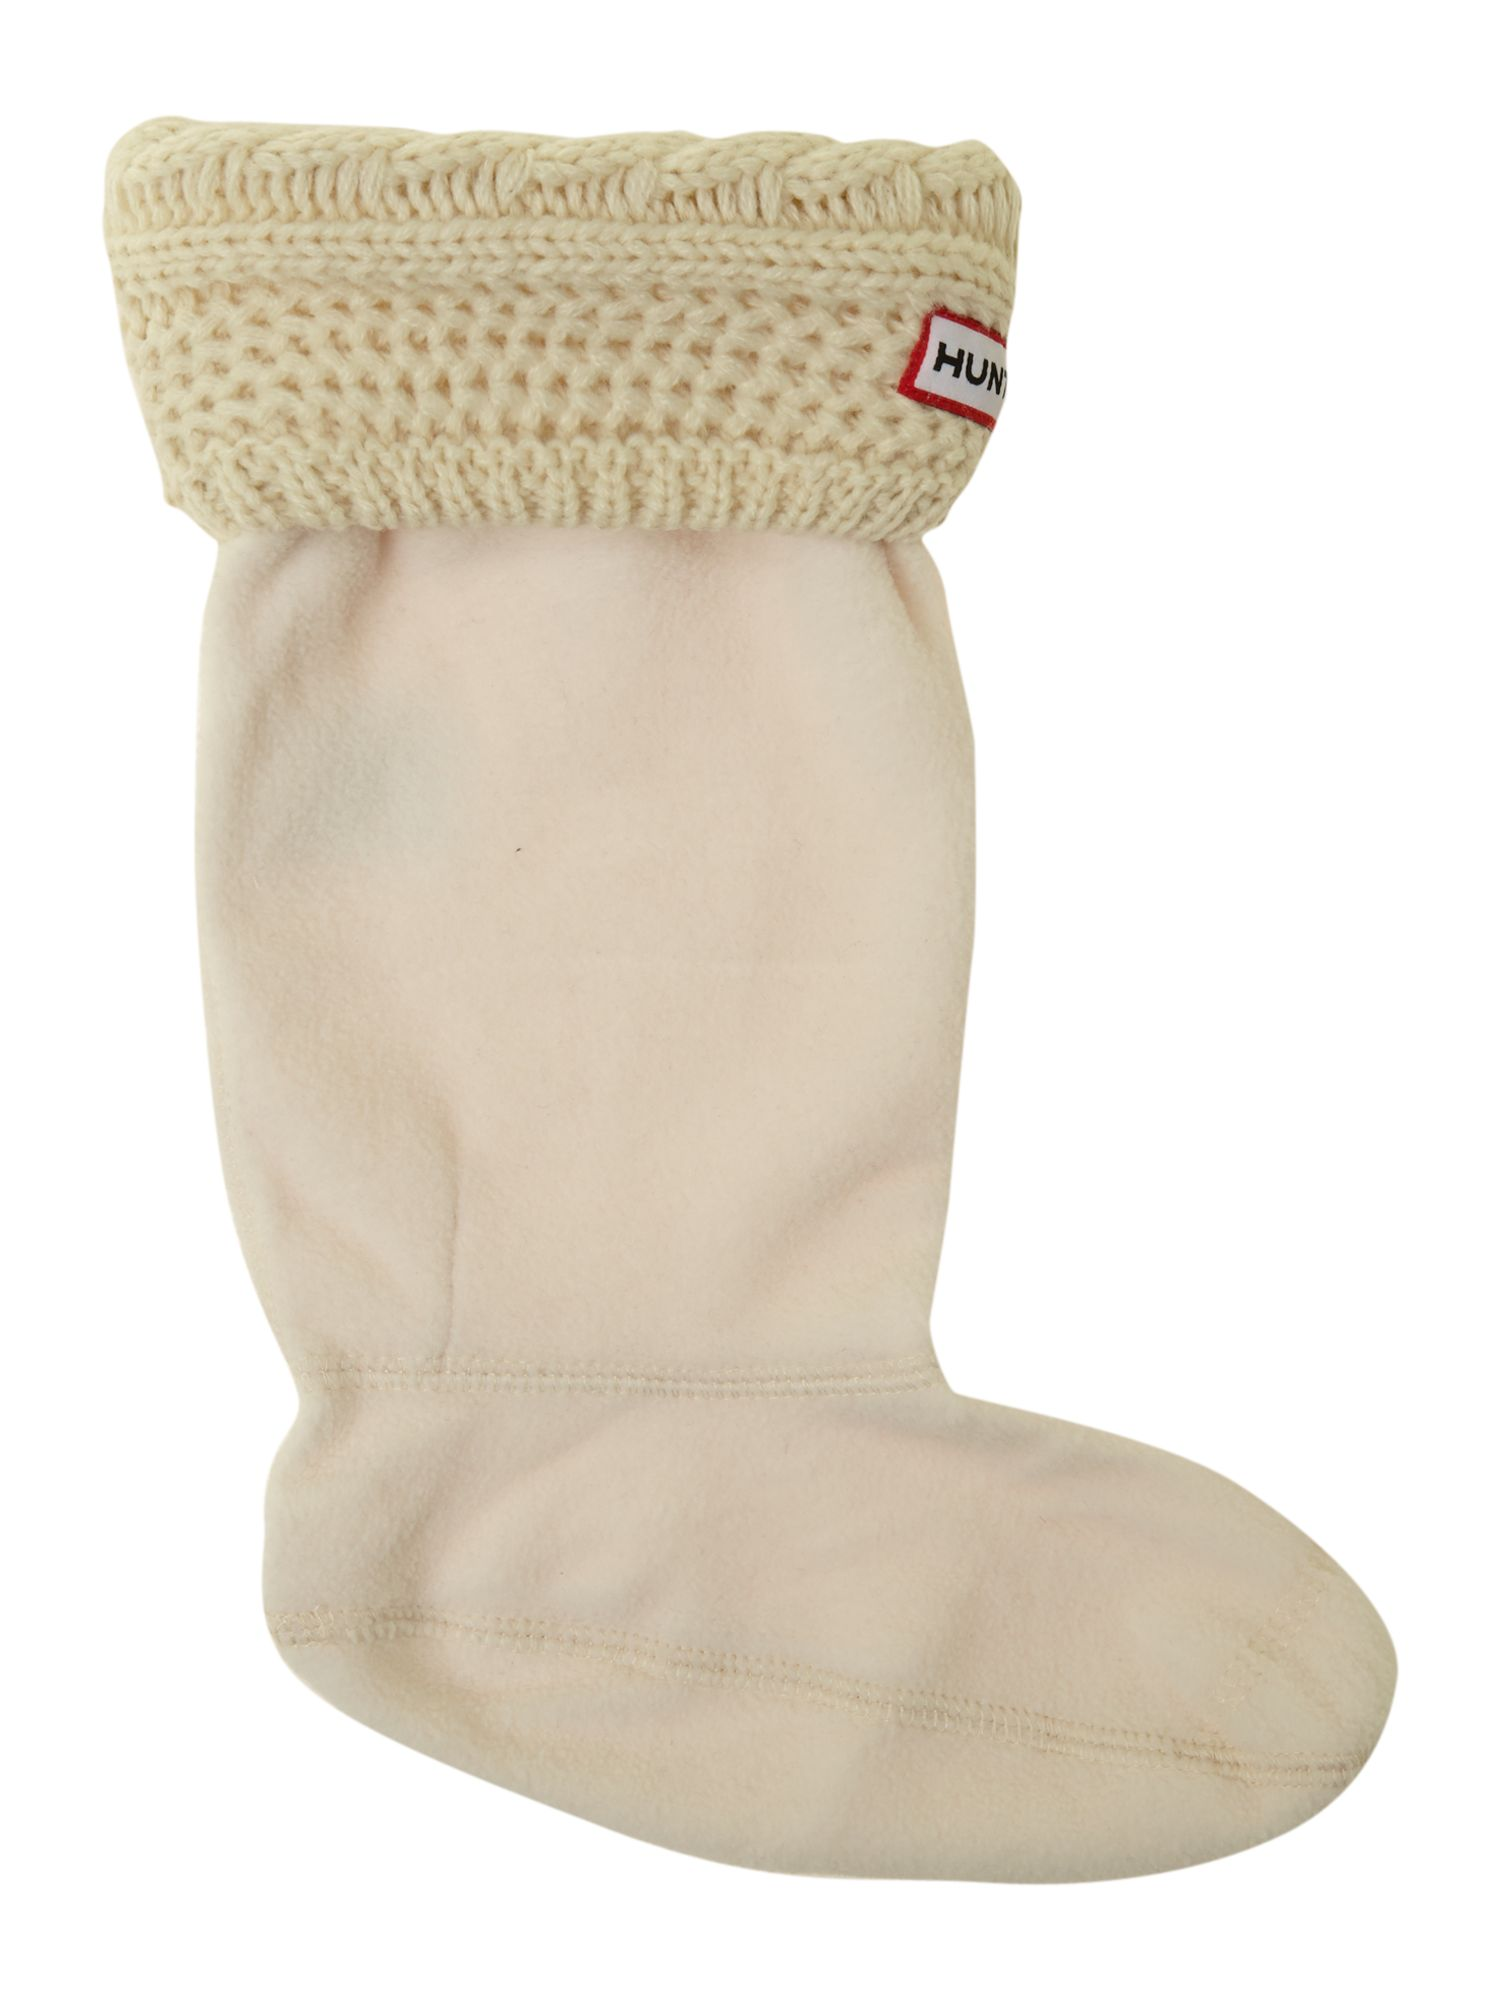 Unisex cable knit sock